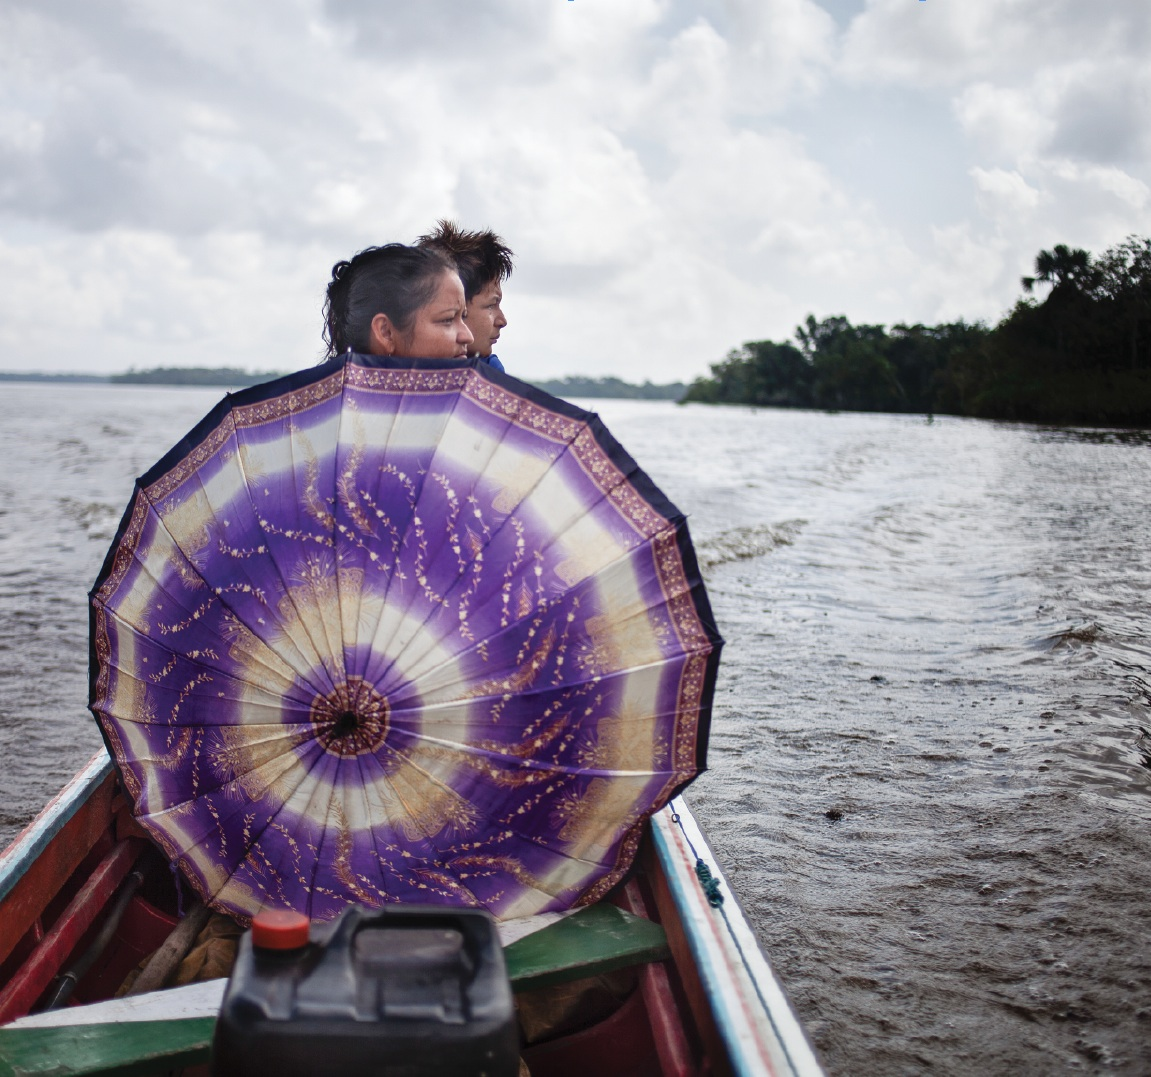 Lilia and her son Helielder on their boat along the Amazon. Lilia moved to Jararaca when she married. Her husband is the 